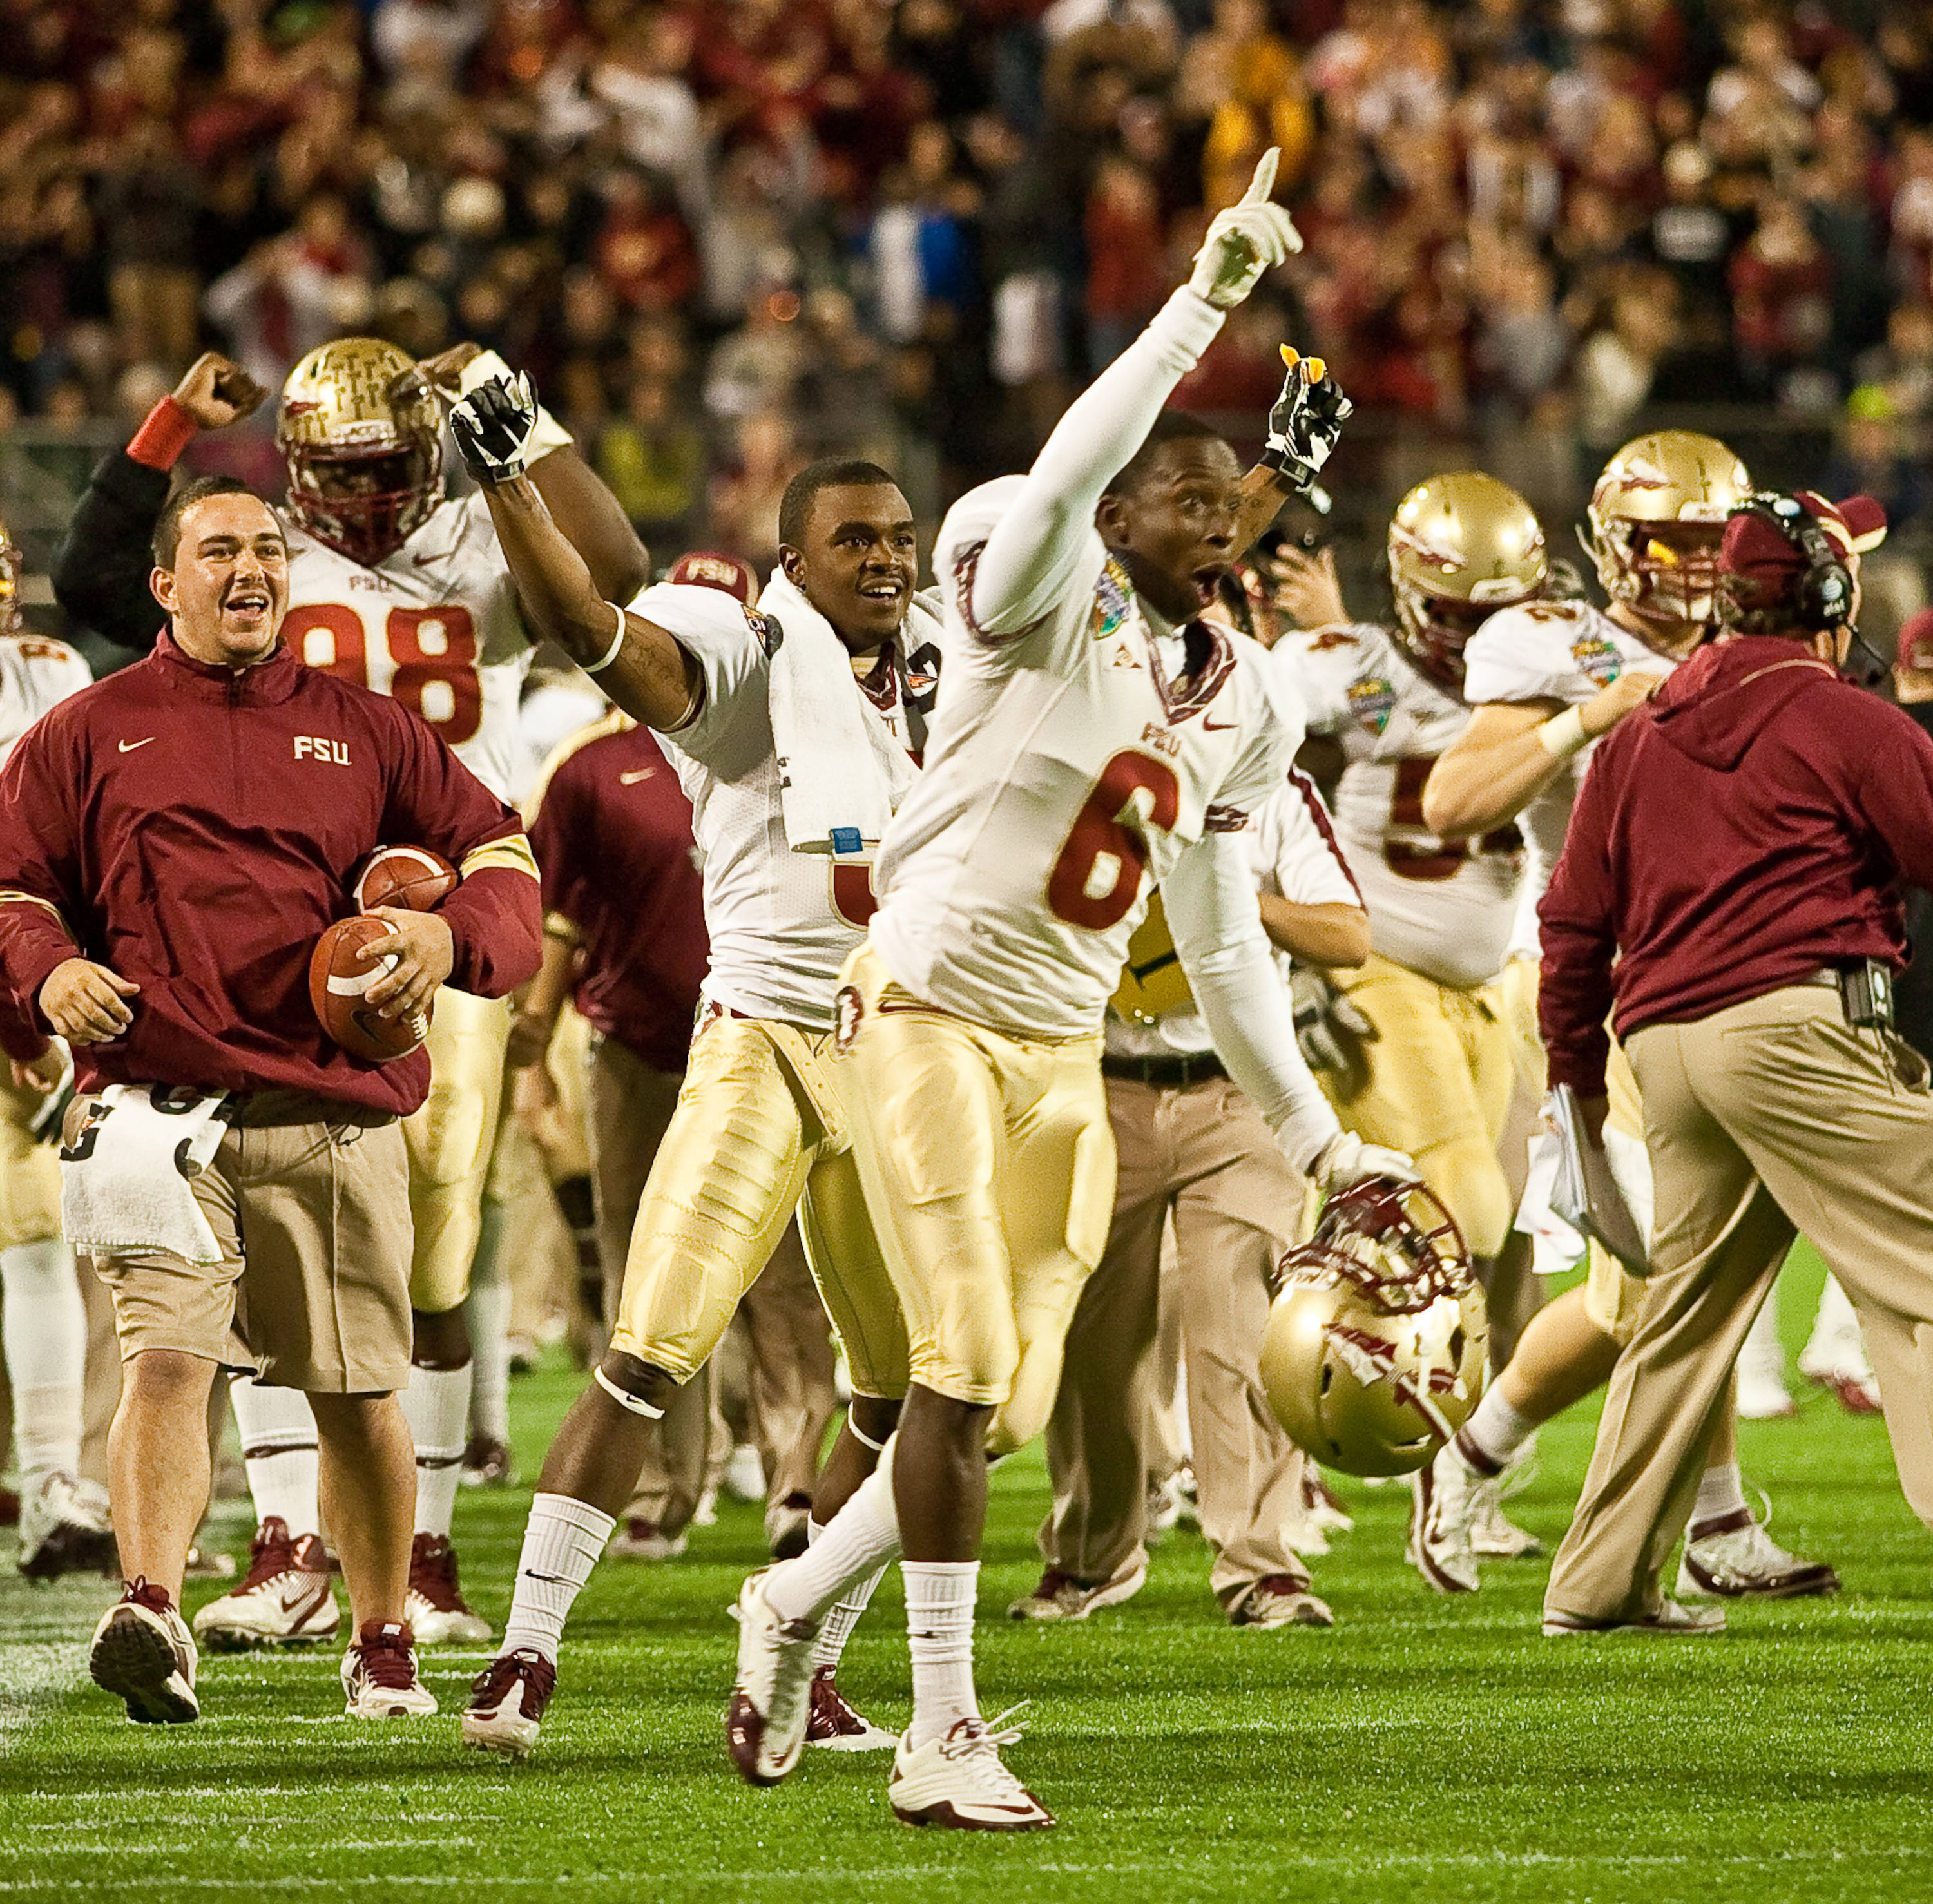 The Seminoles celebrate on the sidelines